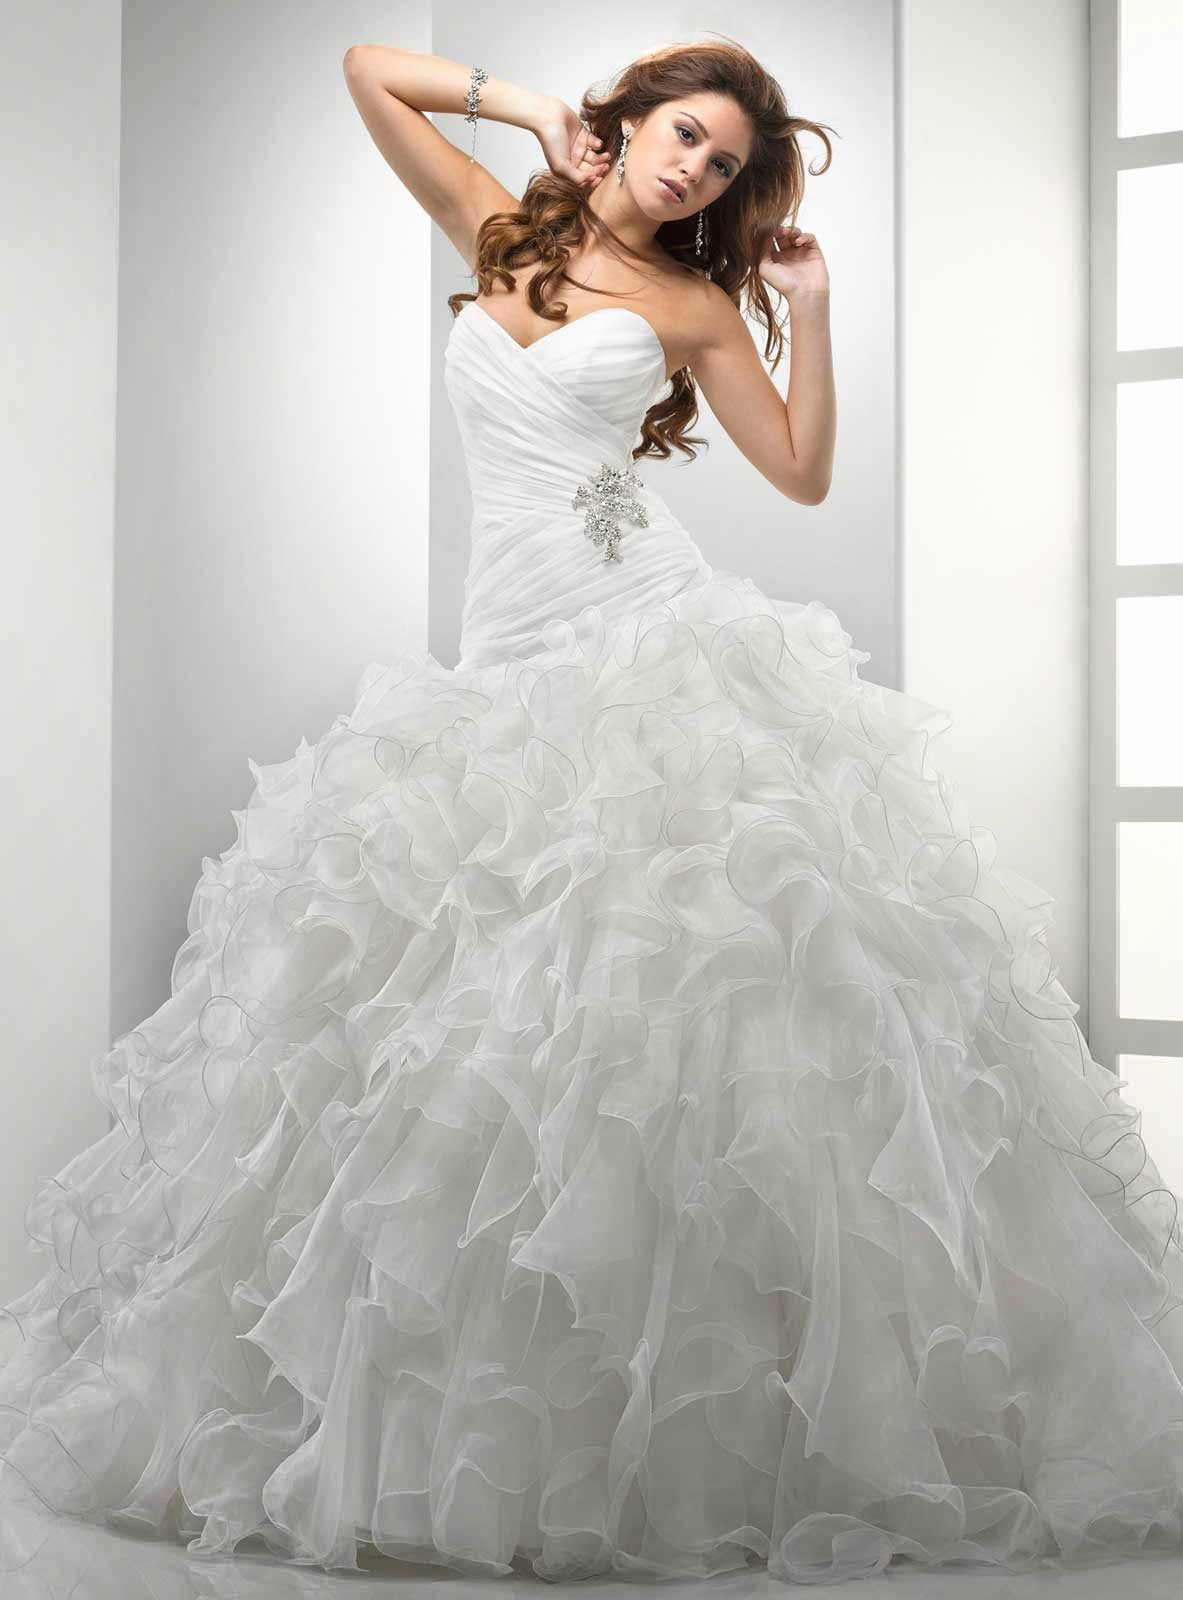 Sweetheart Neckline Ball Gown Wedding Dresses Photos HD Concepts Ideas